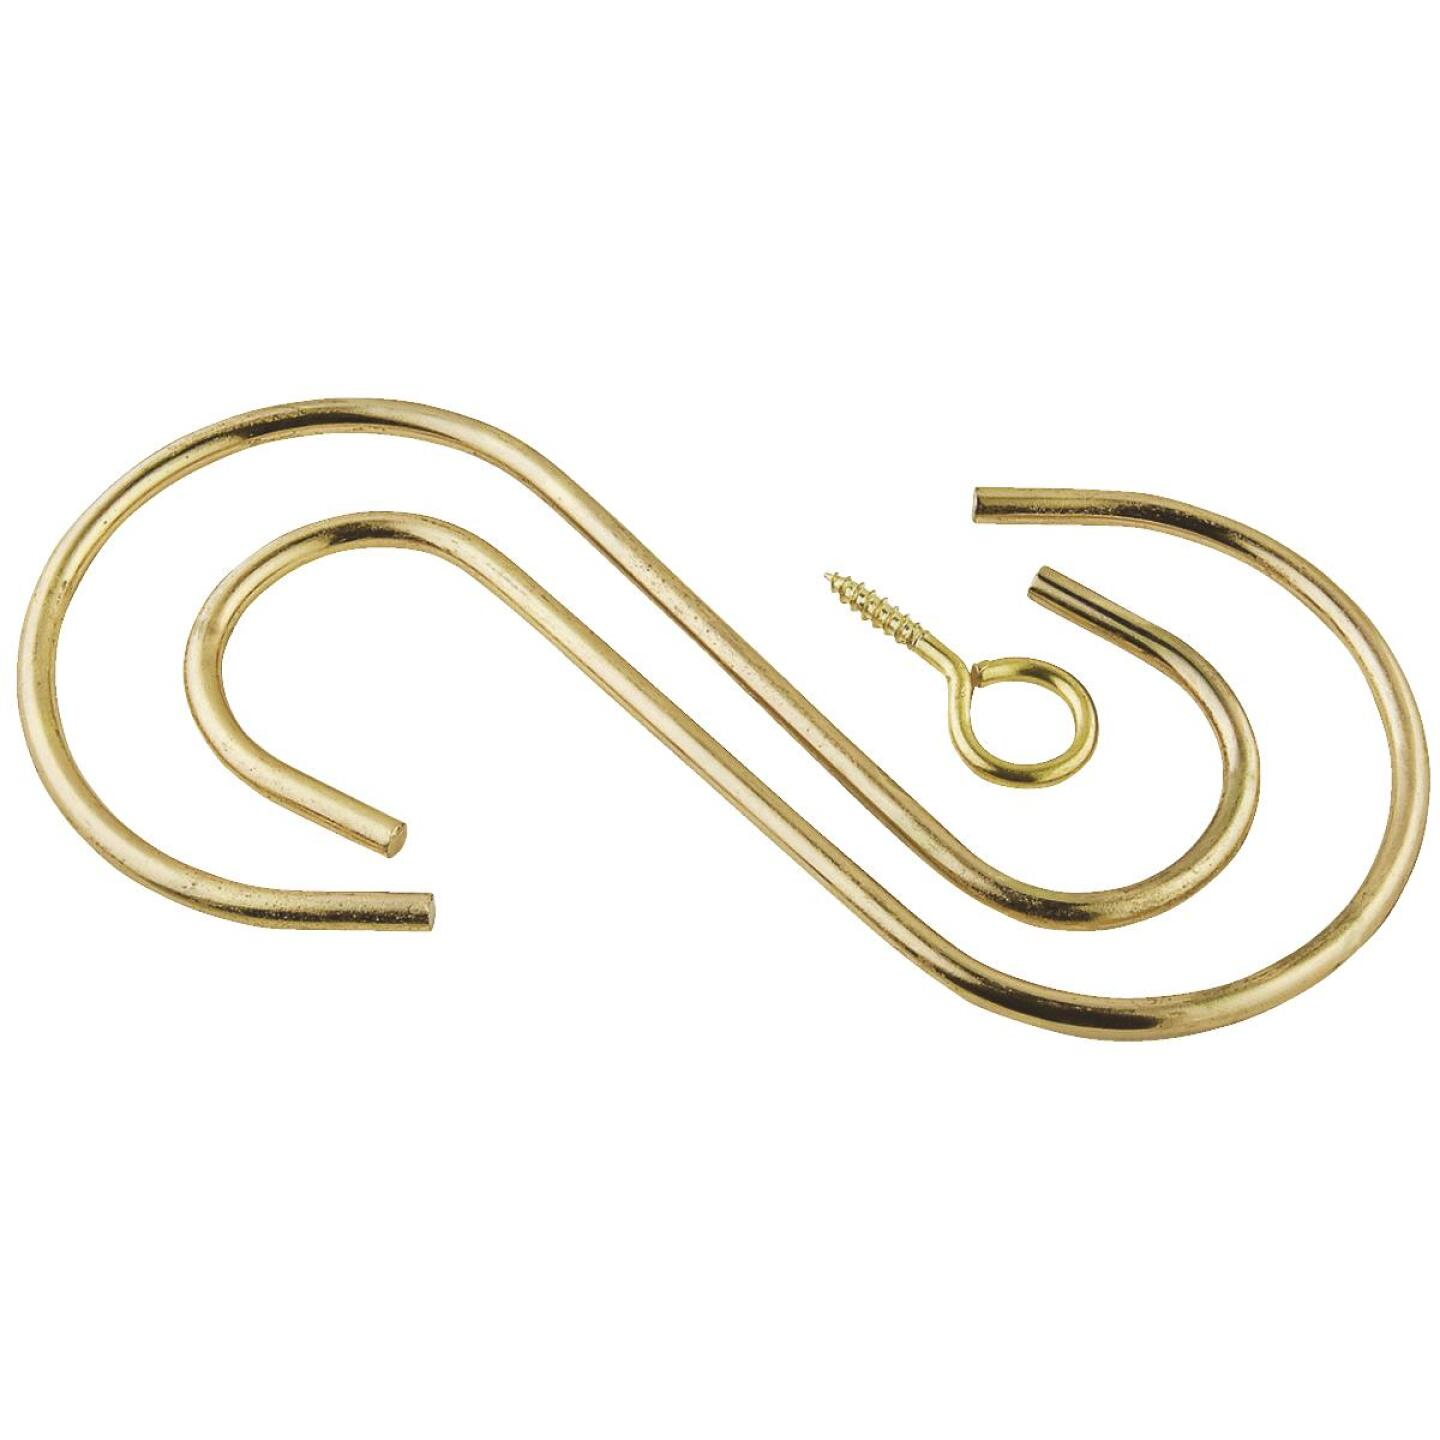 National Hardware 6 In. Brass Steel Extension Hook Kit Image 1